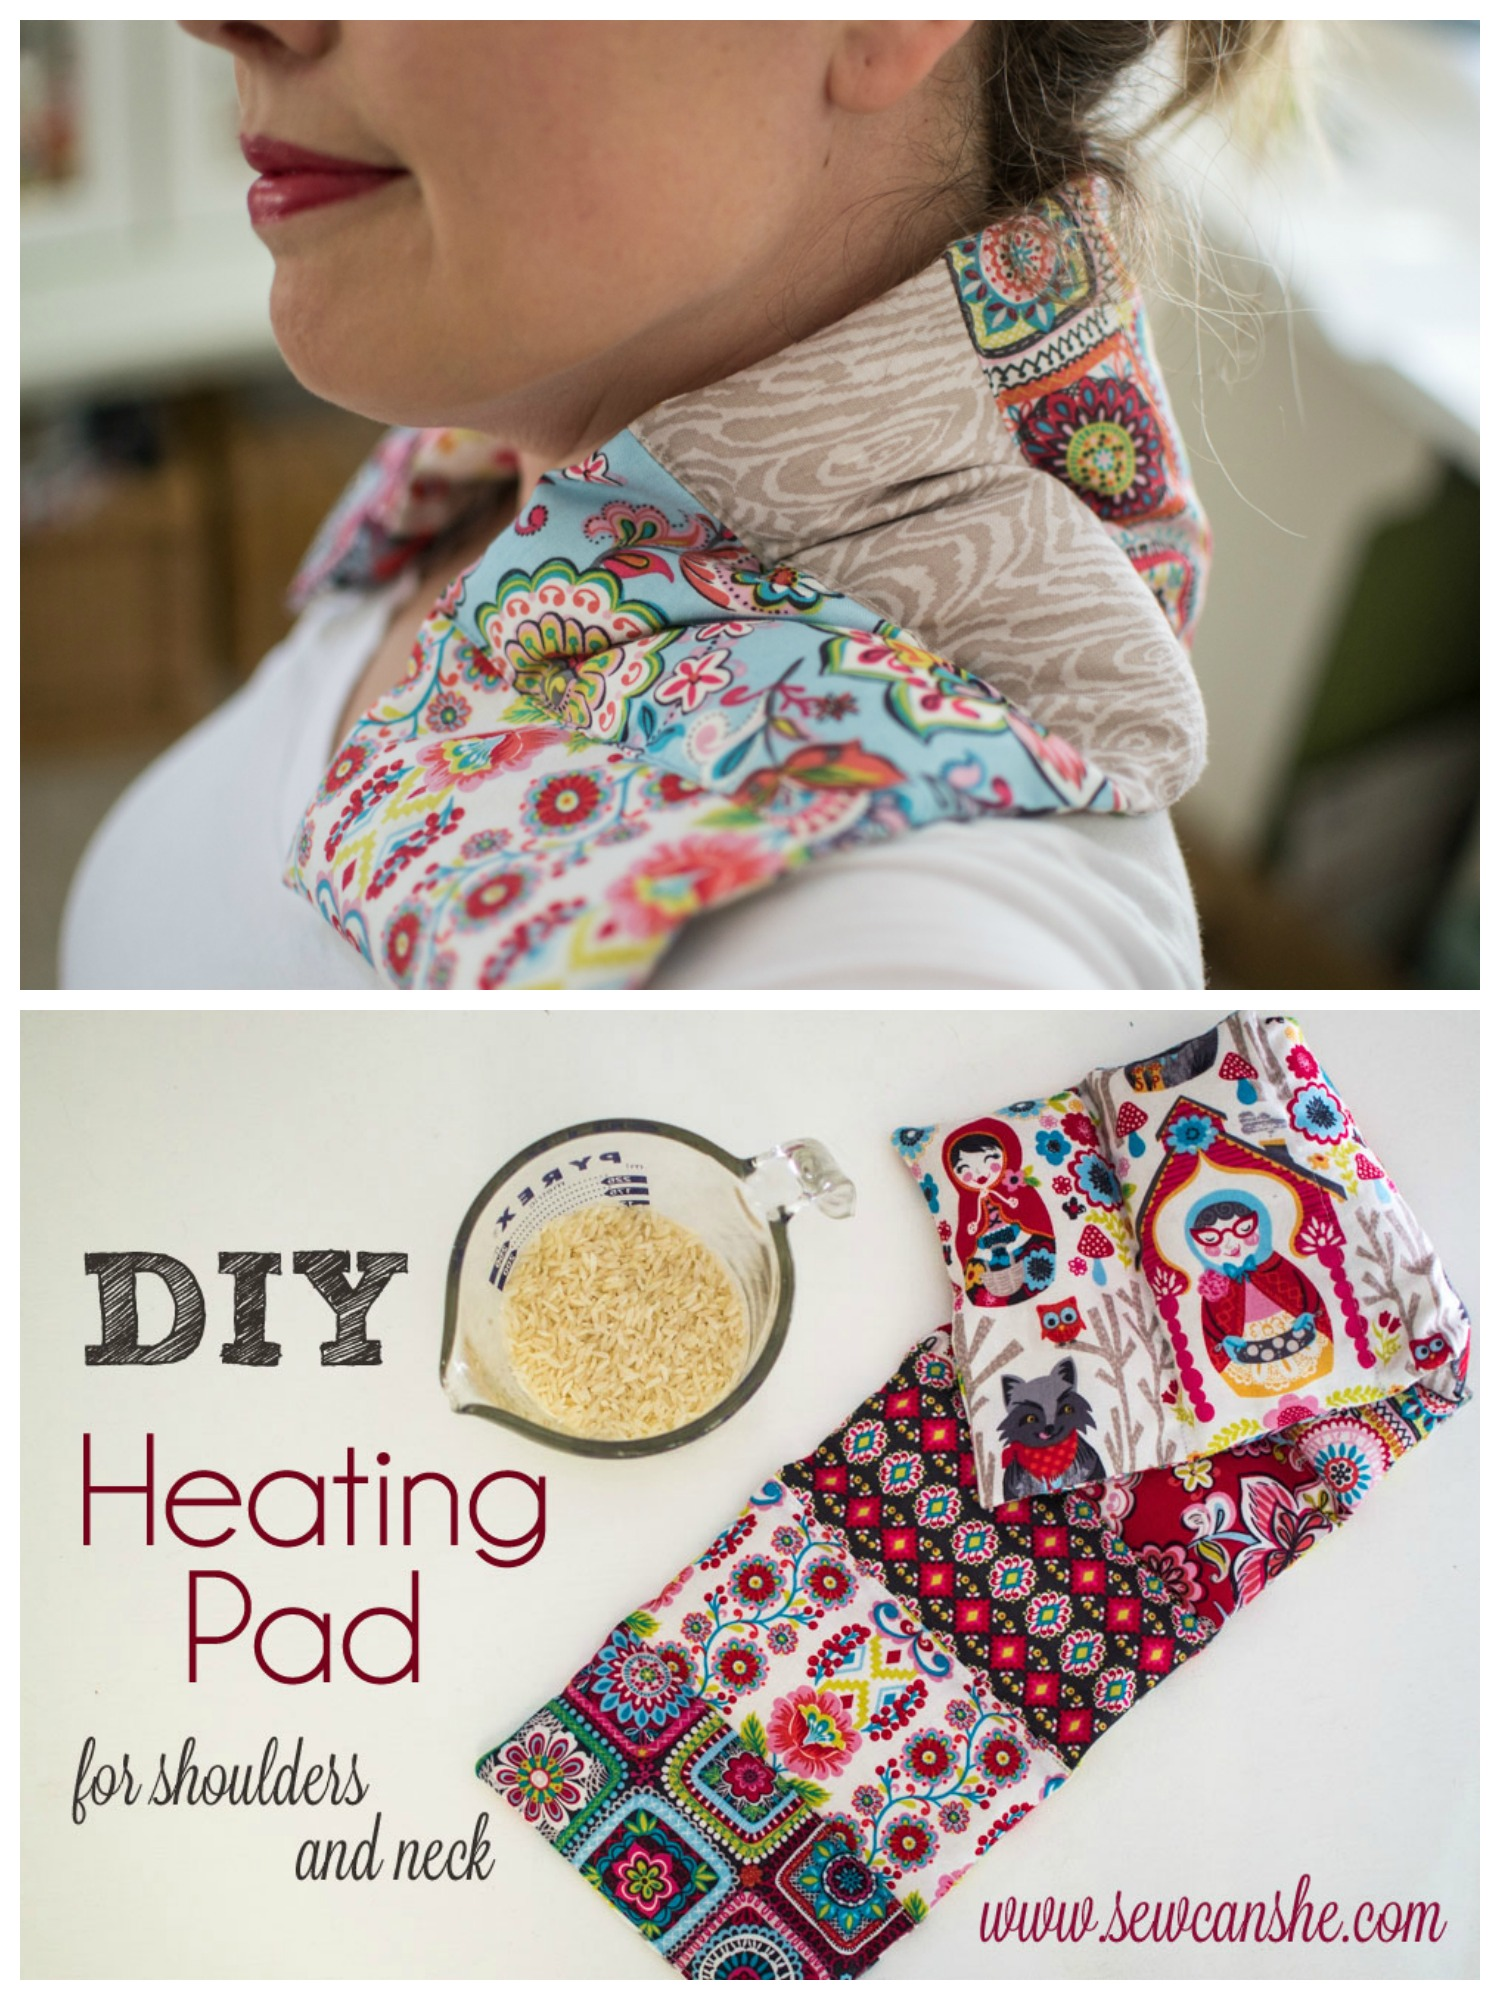 Diy Heating Pad For Shoulders And